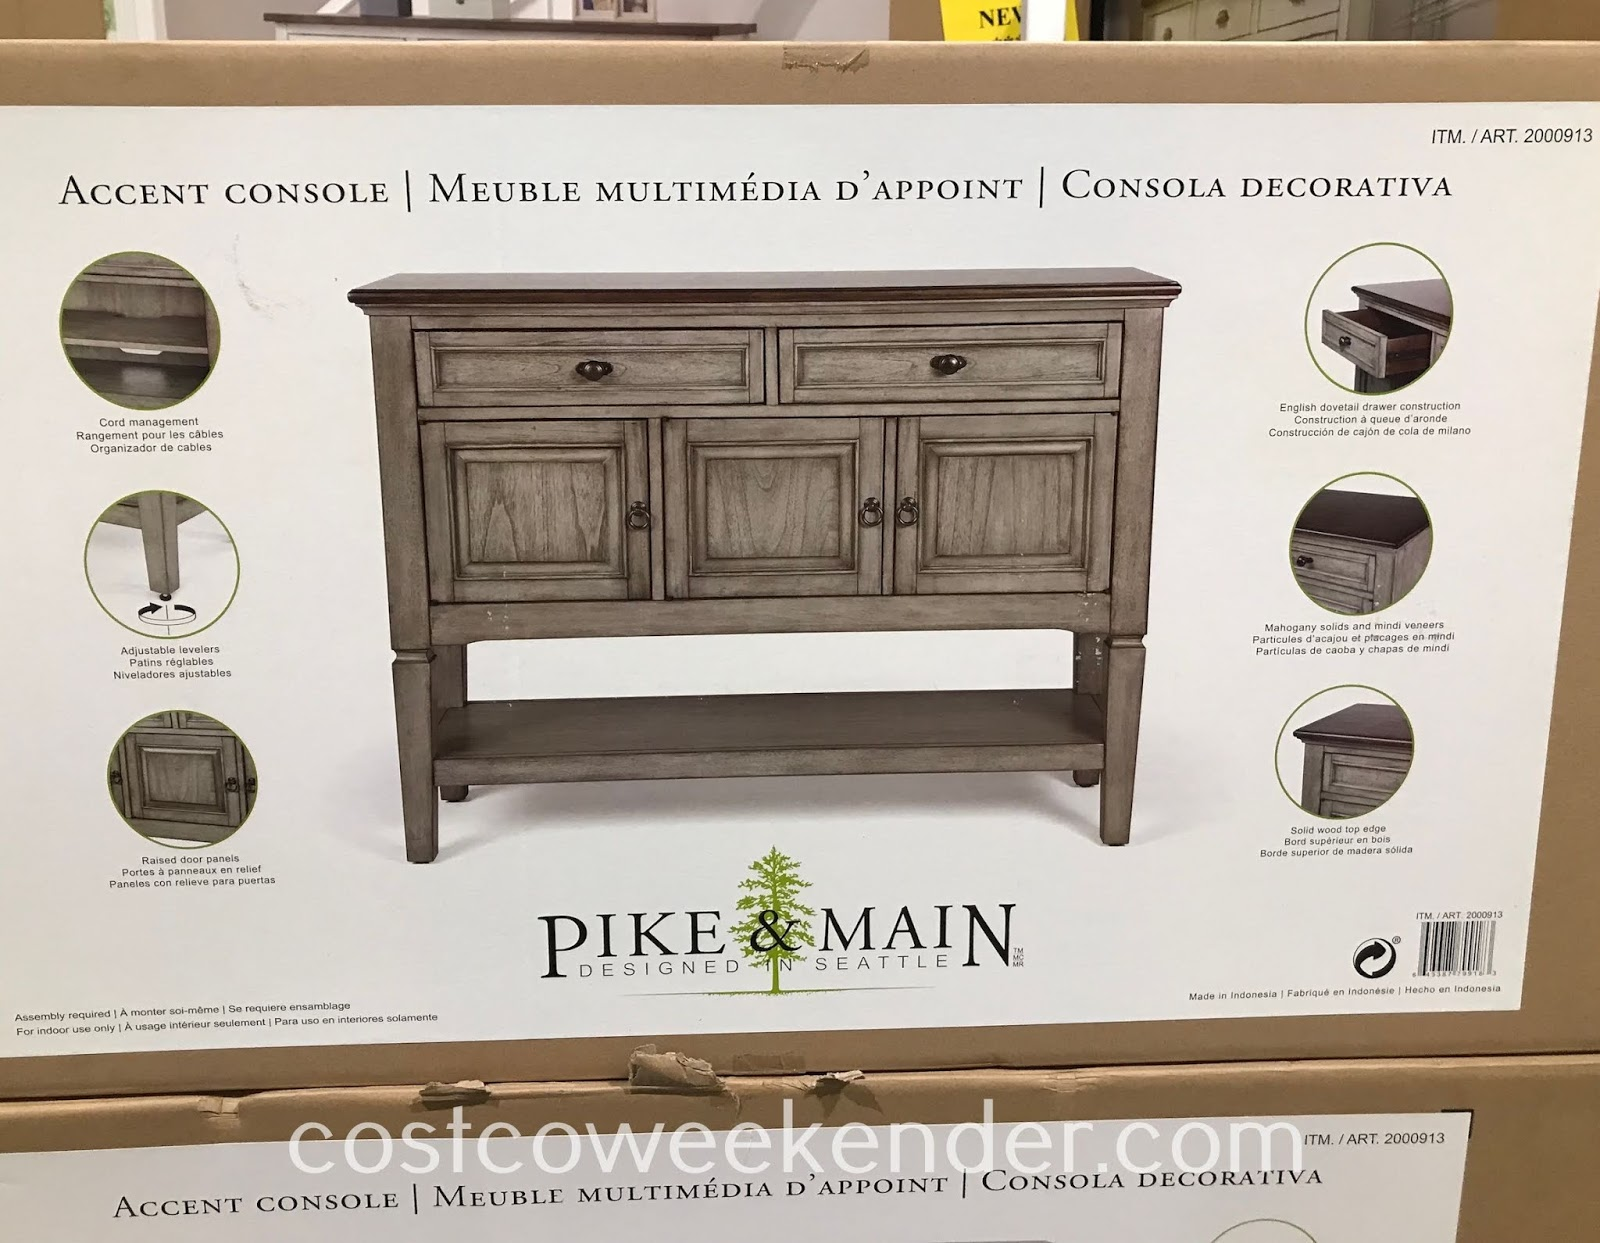 Pike & Main 47in Accent Console: rustic with a classic look